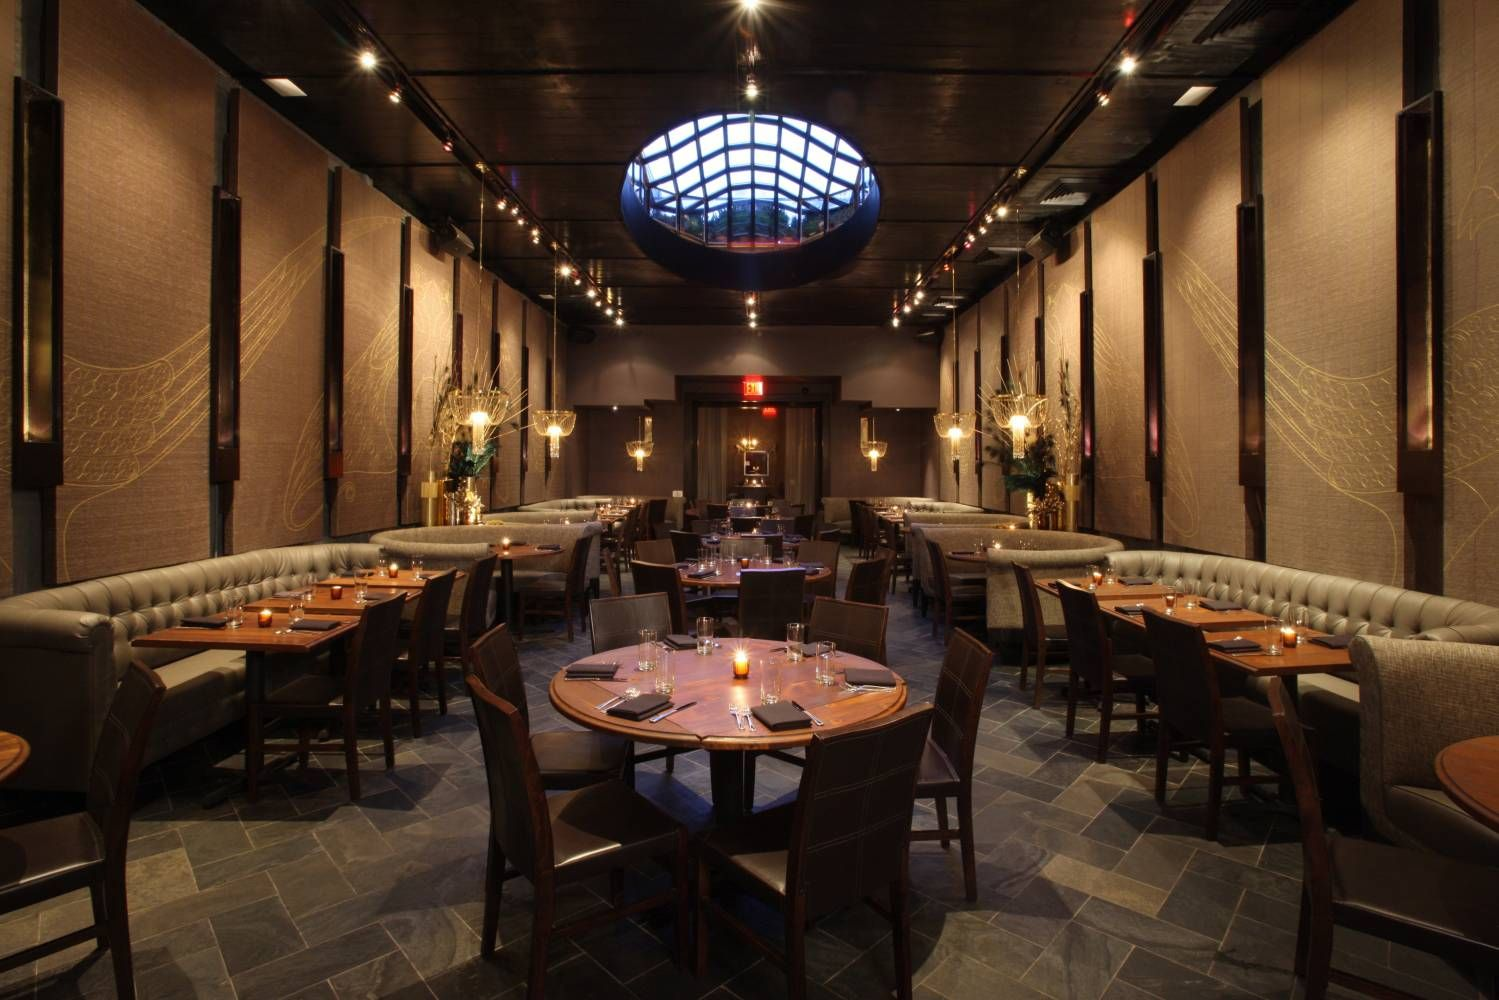 Nyc Restaurant Week 2017 20 Of The Best Deals For Lunch And